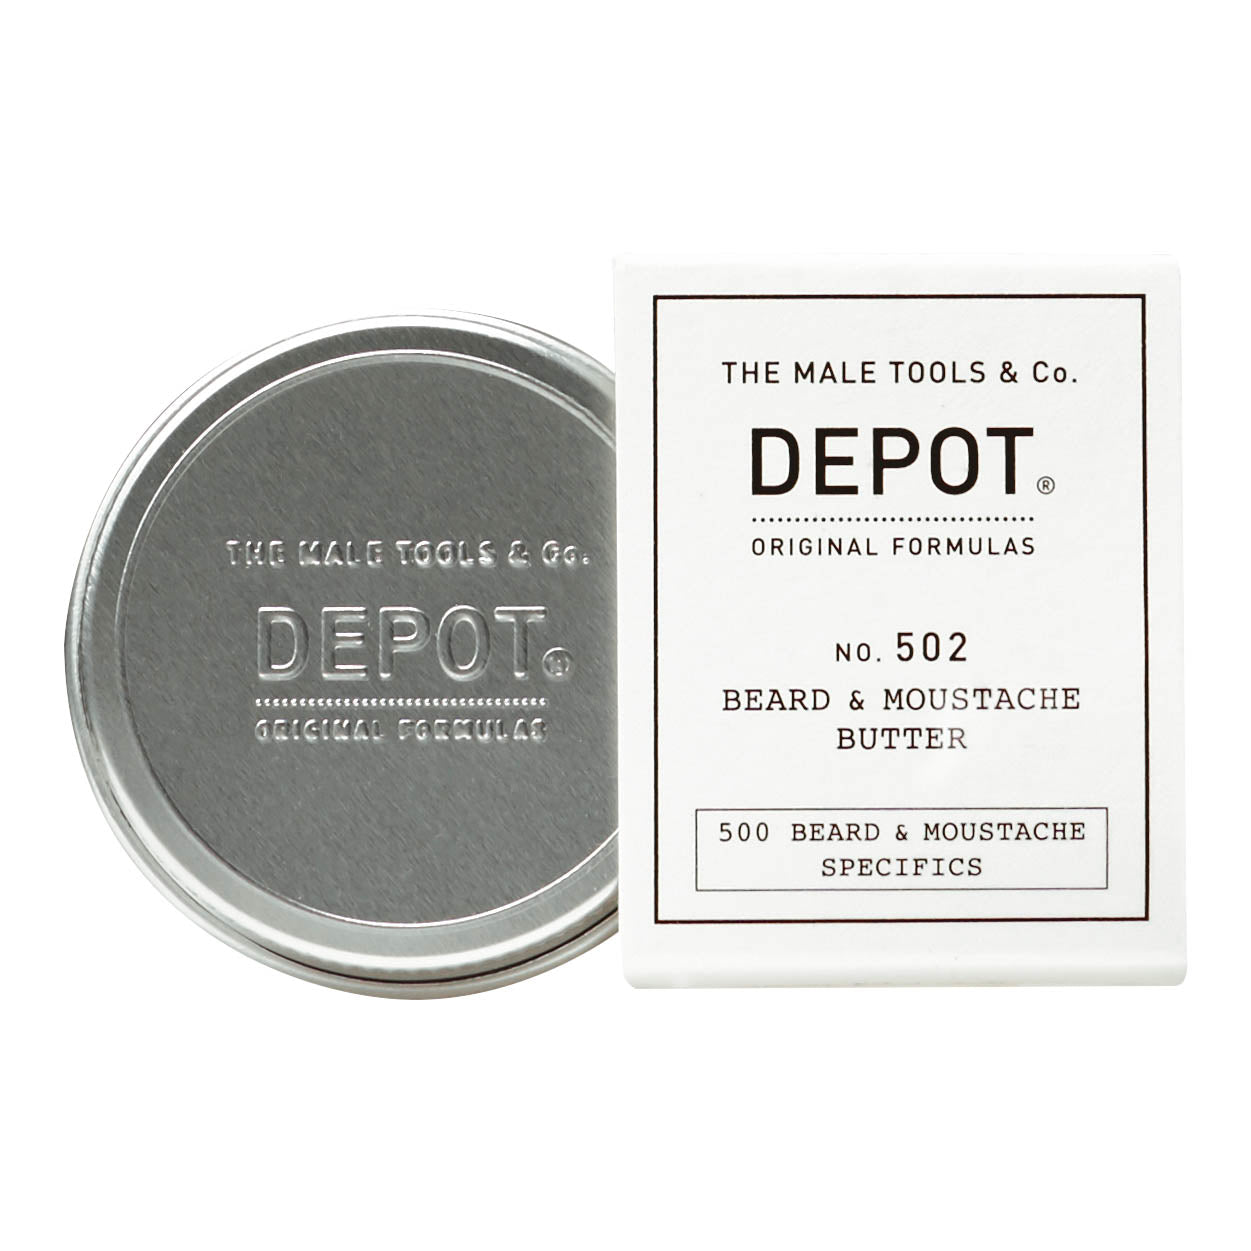 Depot No. 502 Beard & Mustache Butter